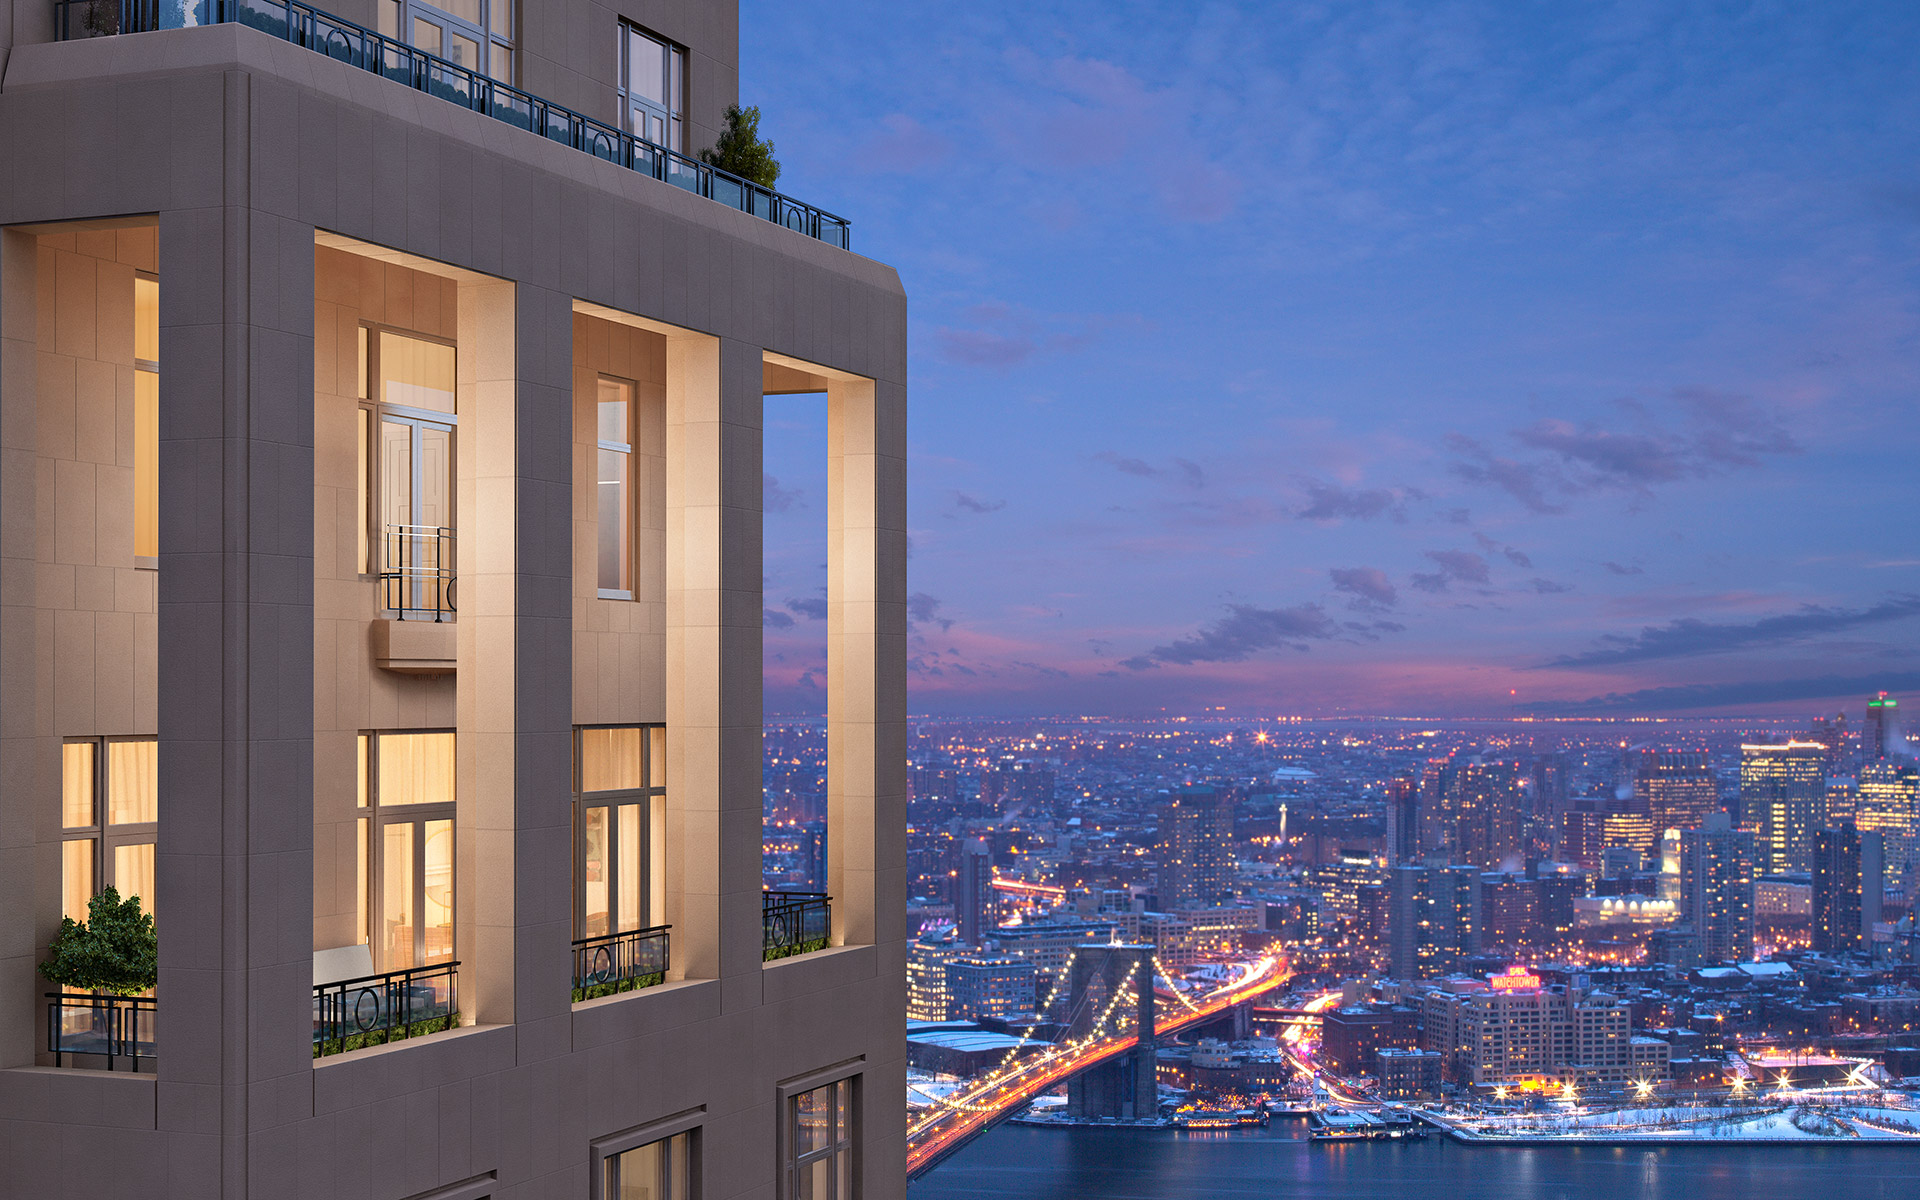 Exterior view of 30 Park Place overlooking the NYC skyline at sunset